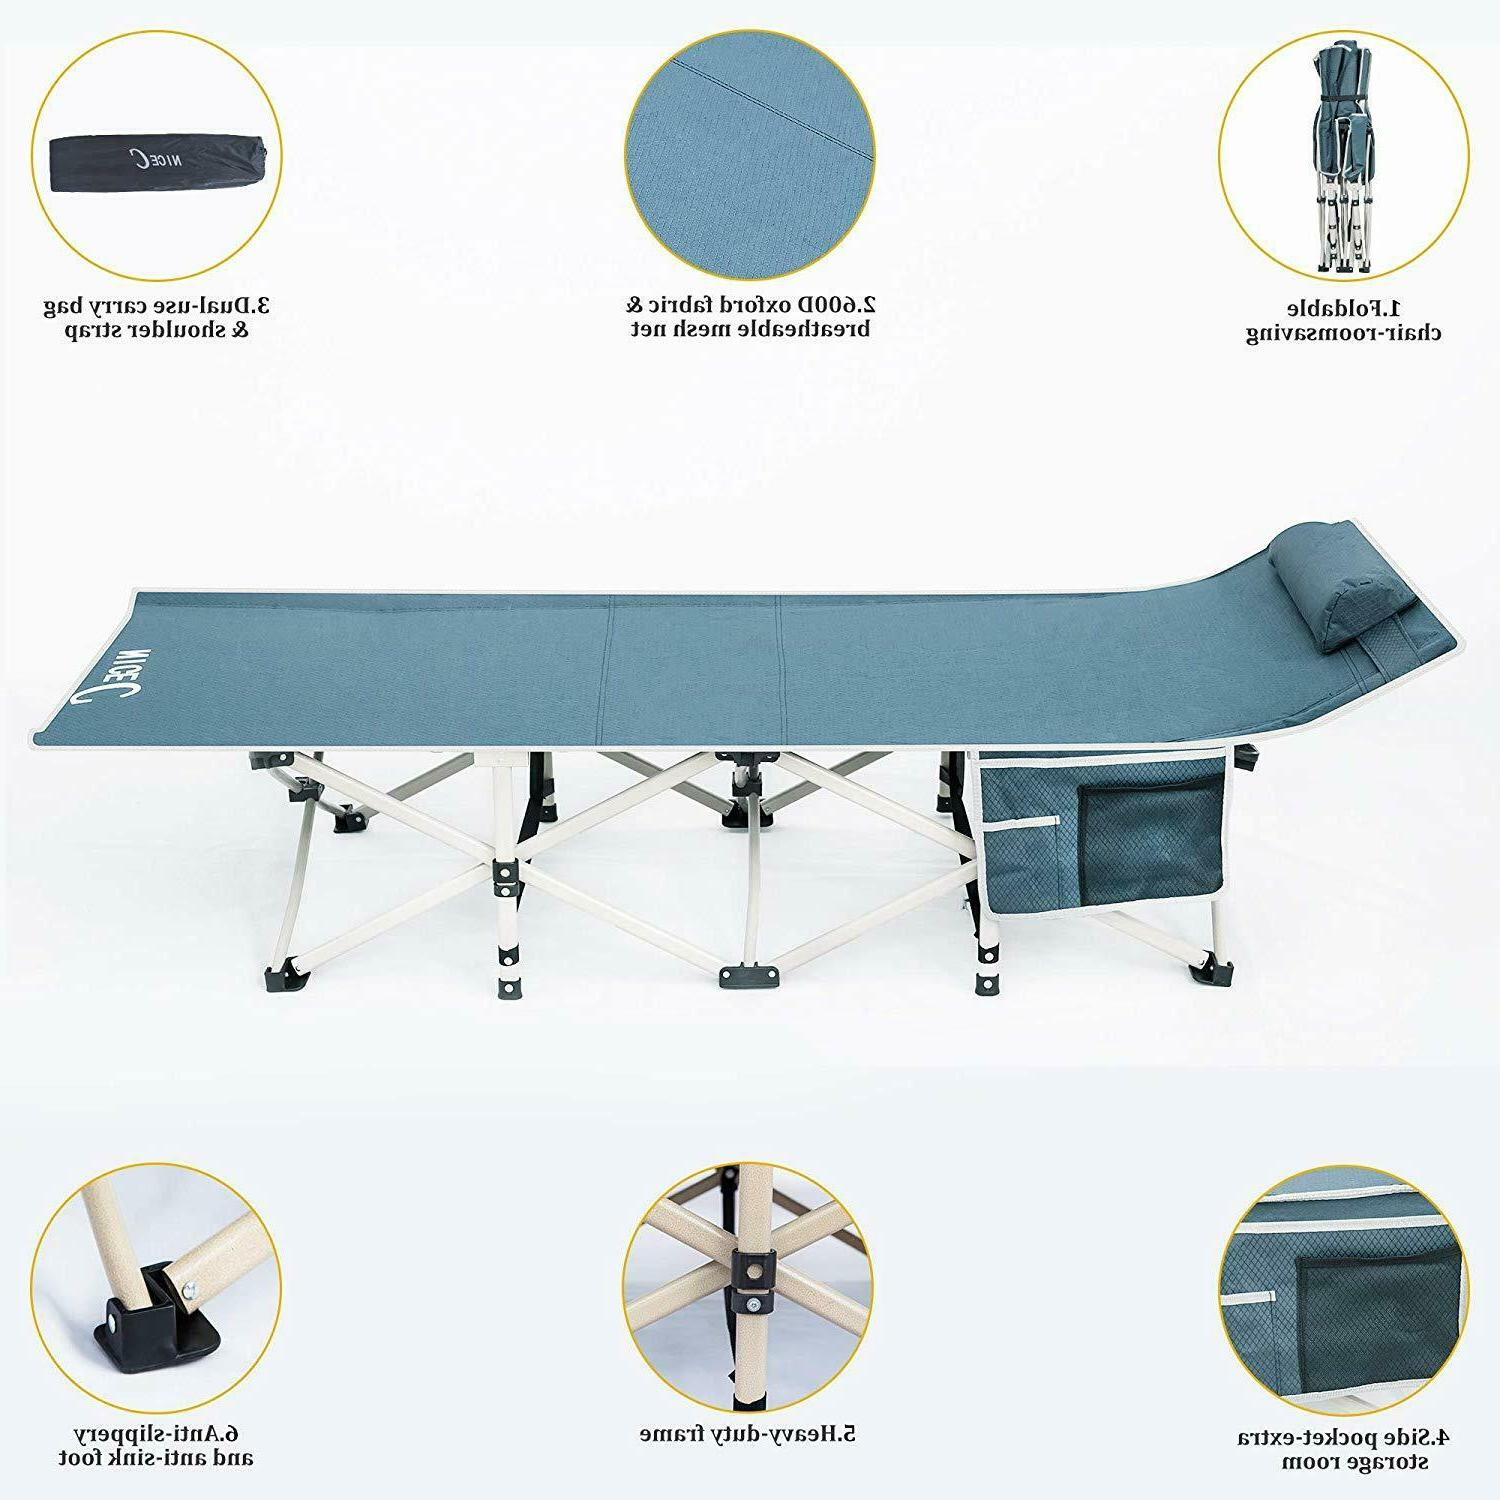 Folding Bed Portable Cot Sleeping Hiking Travel Carry